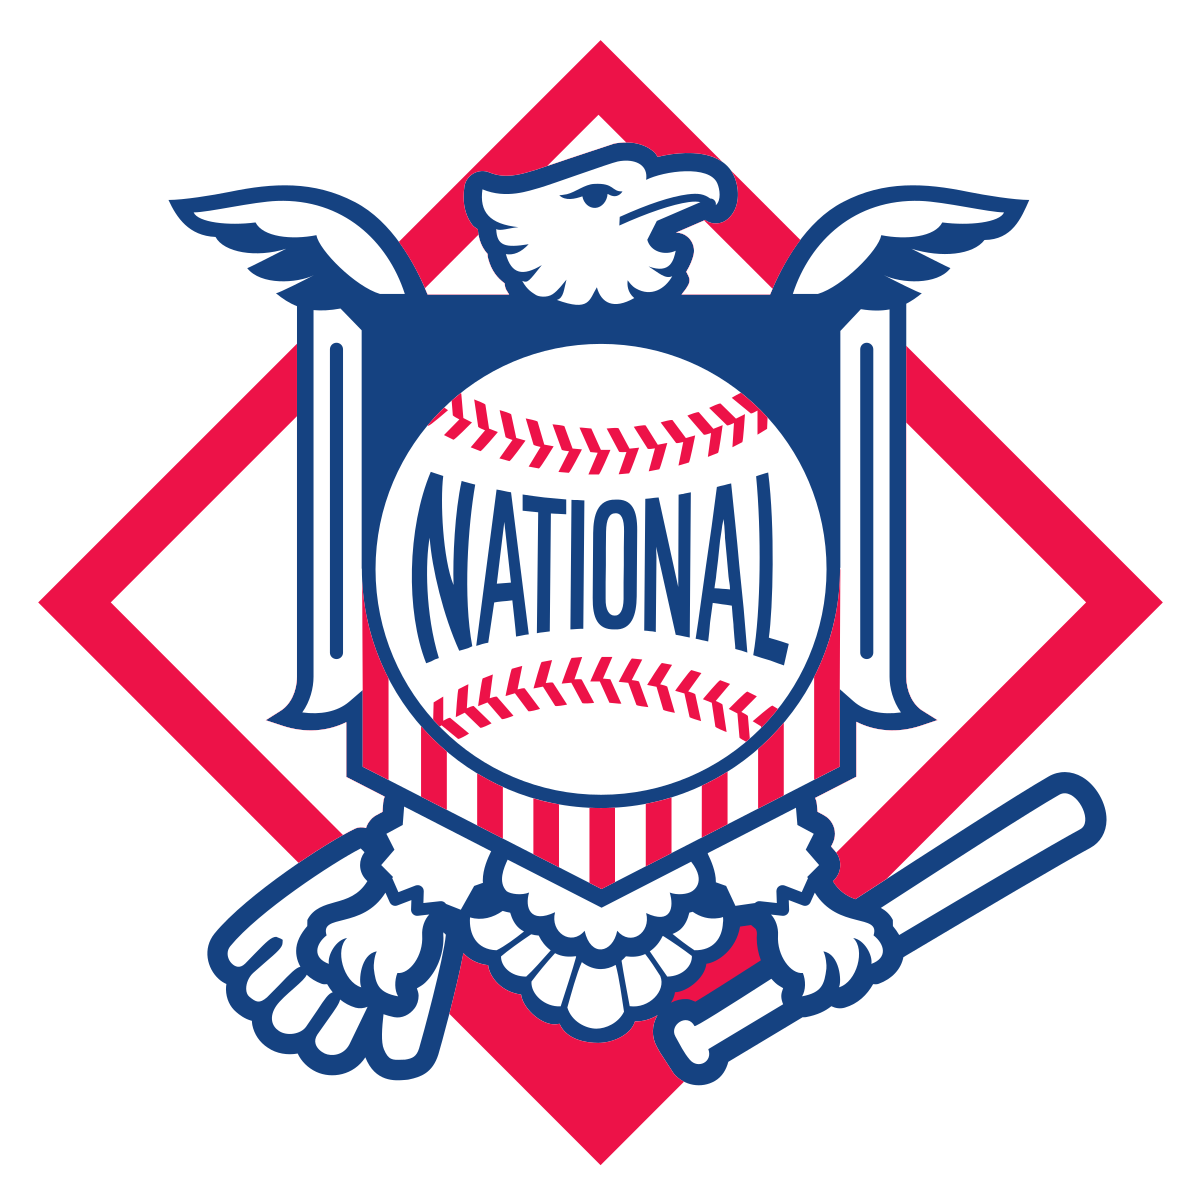 Major league baseball stadium clipart graphic royalty free National League - Wikipedia graphic royalty free